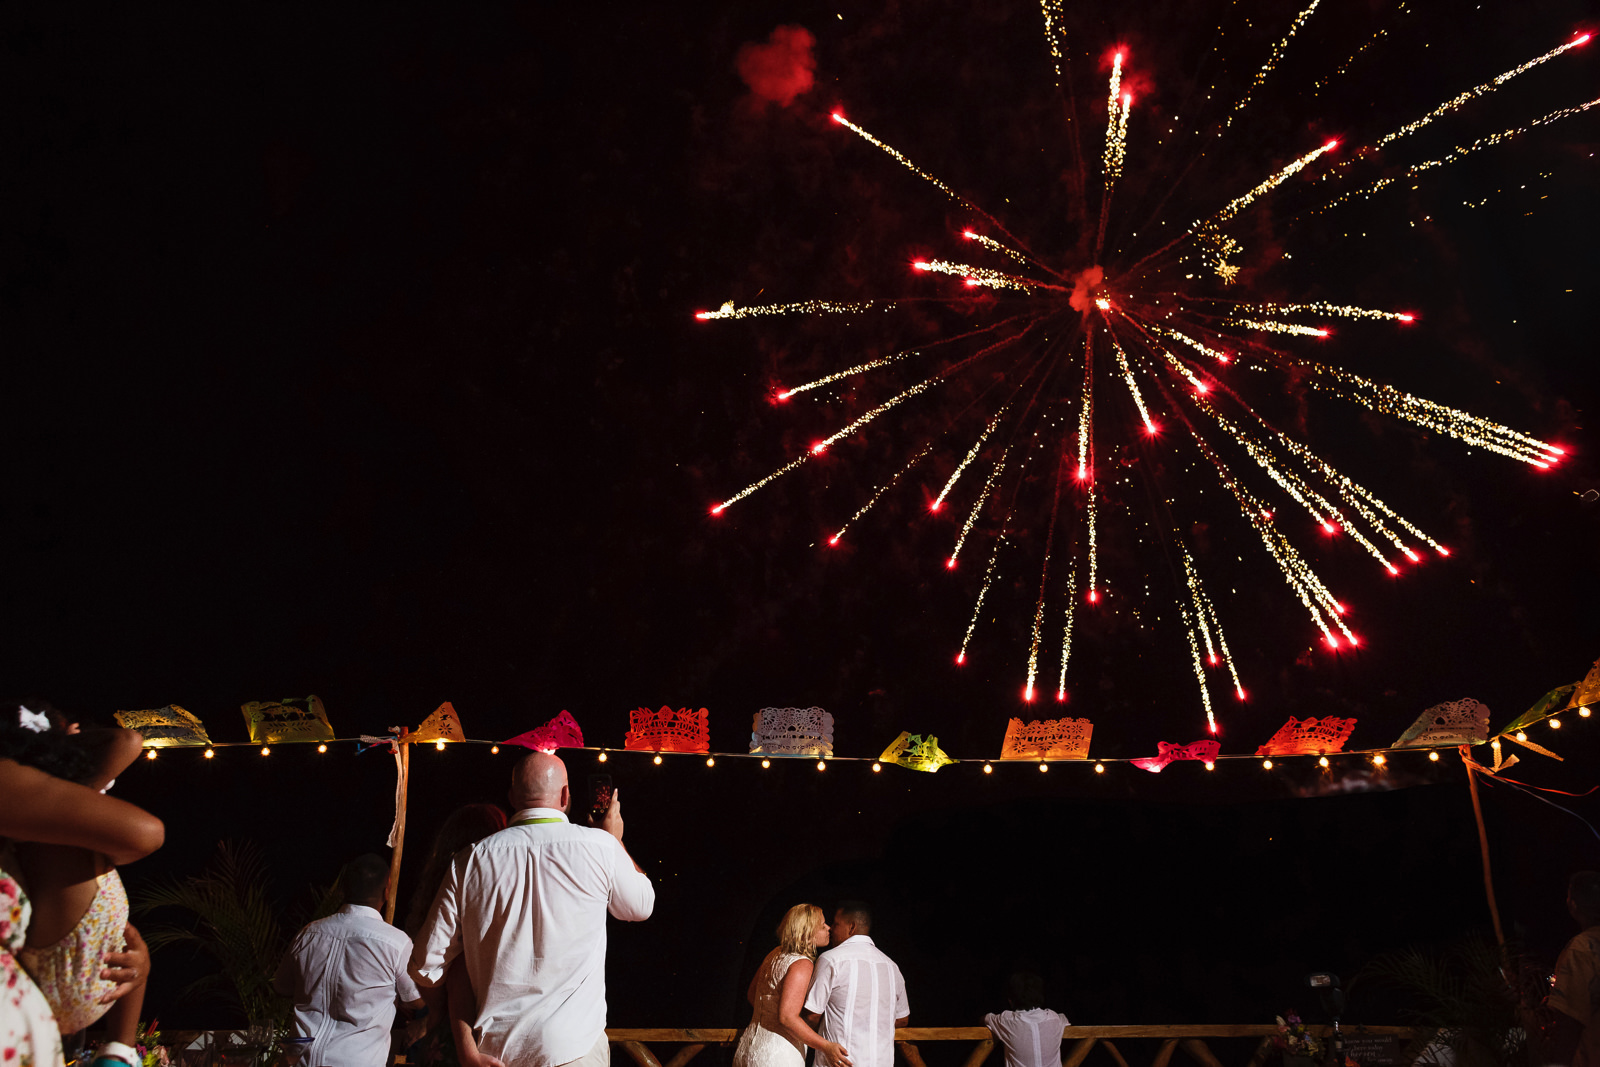 Fireworks exploding near the Miramar terrace while the bride and groom kiss.